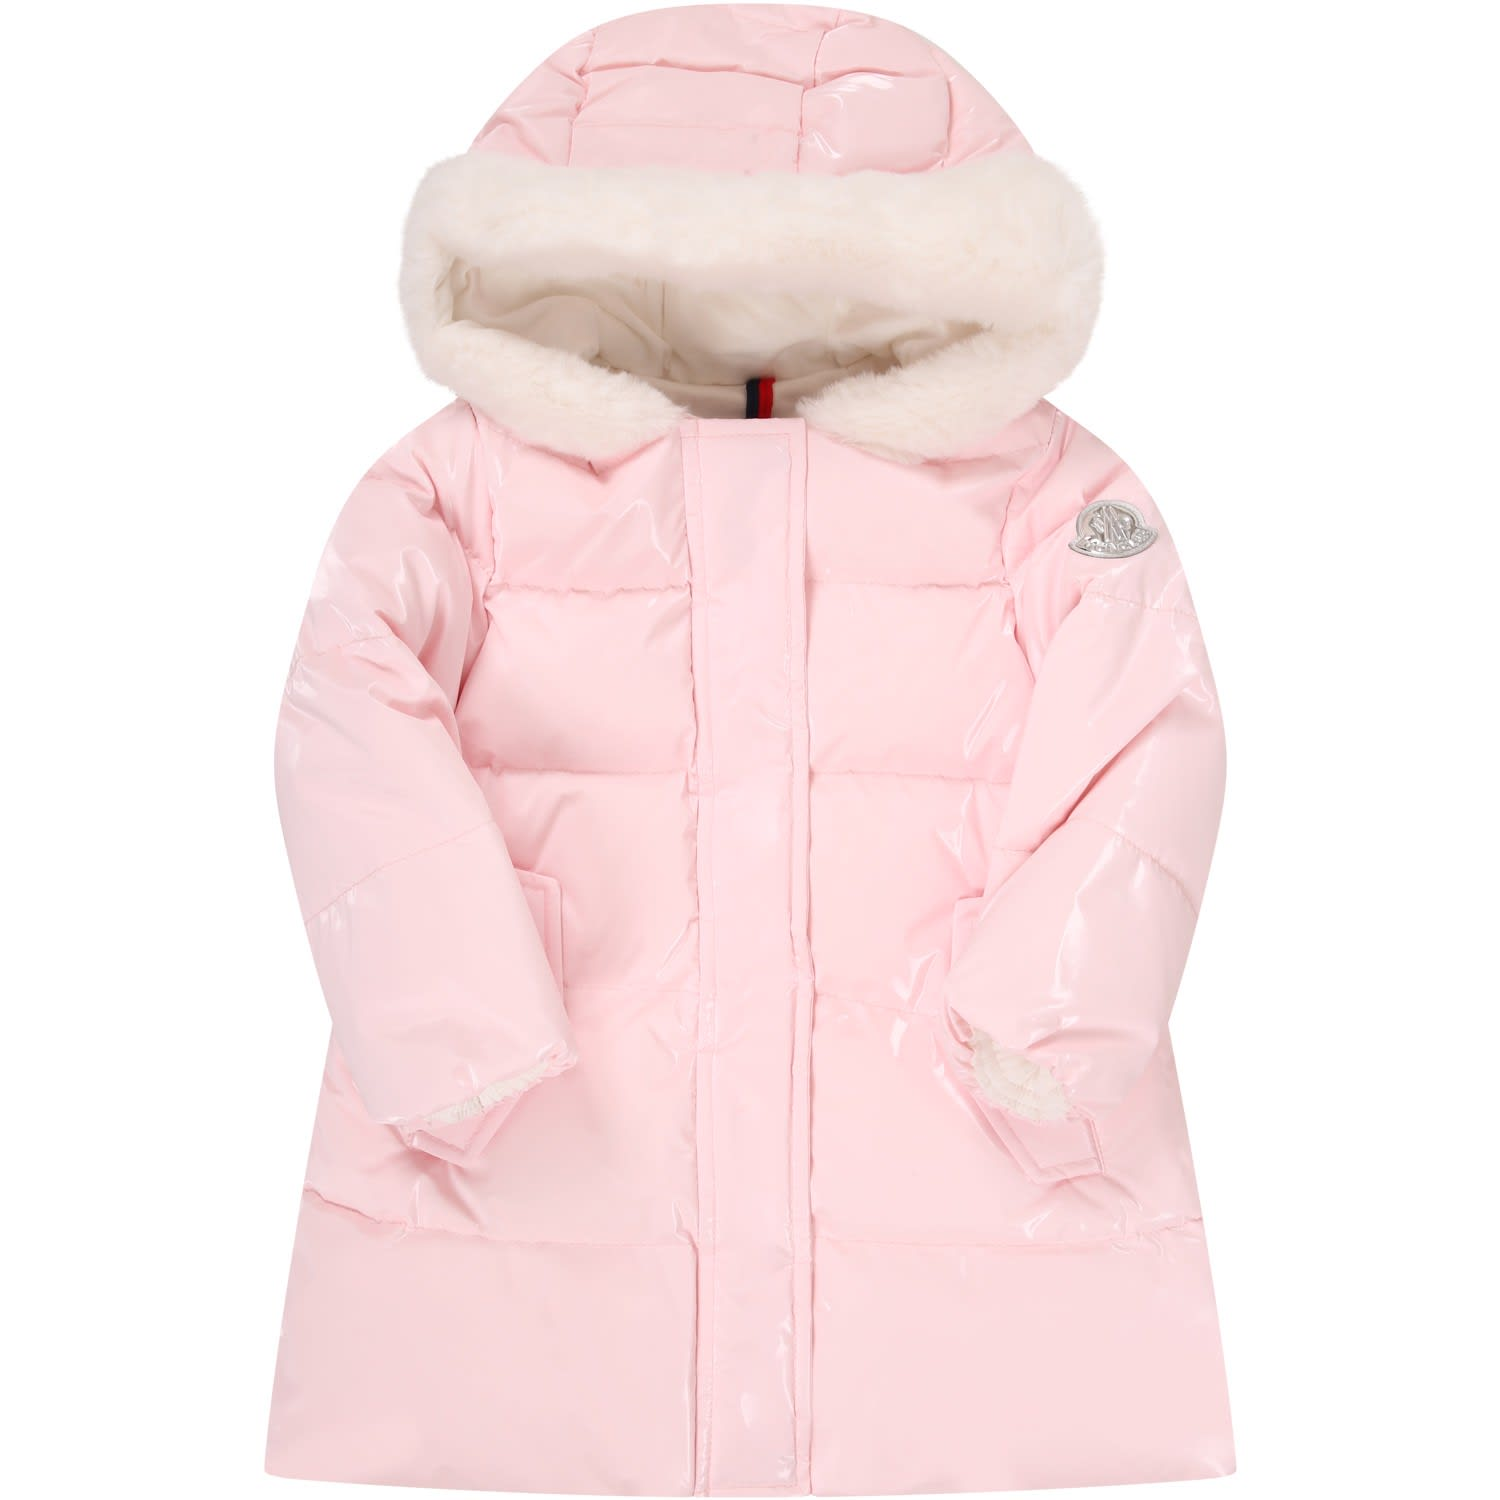 Moncler Pink Jacket For Babygirl With Iconic Logo